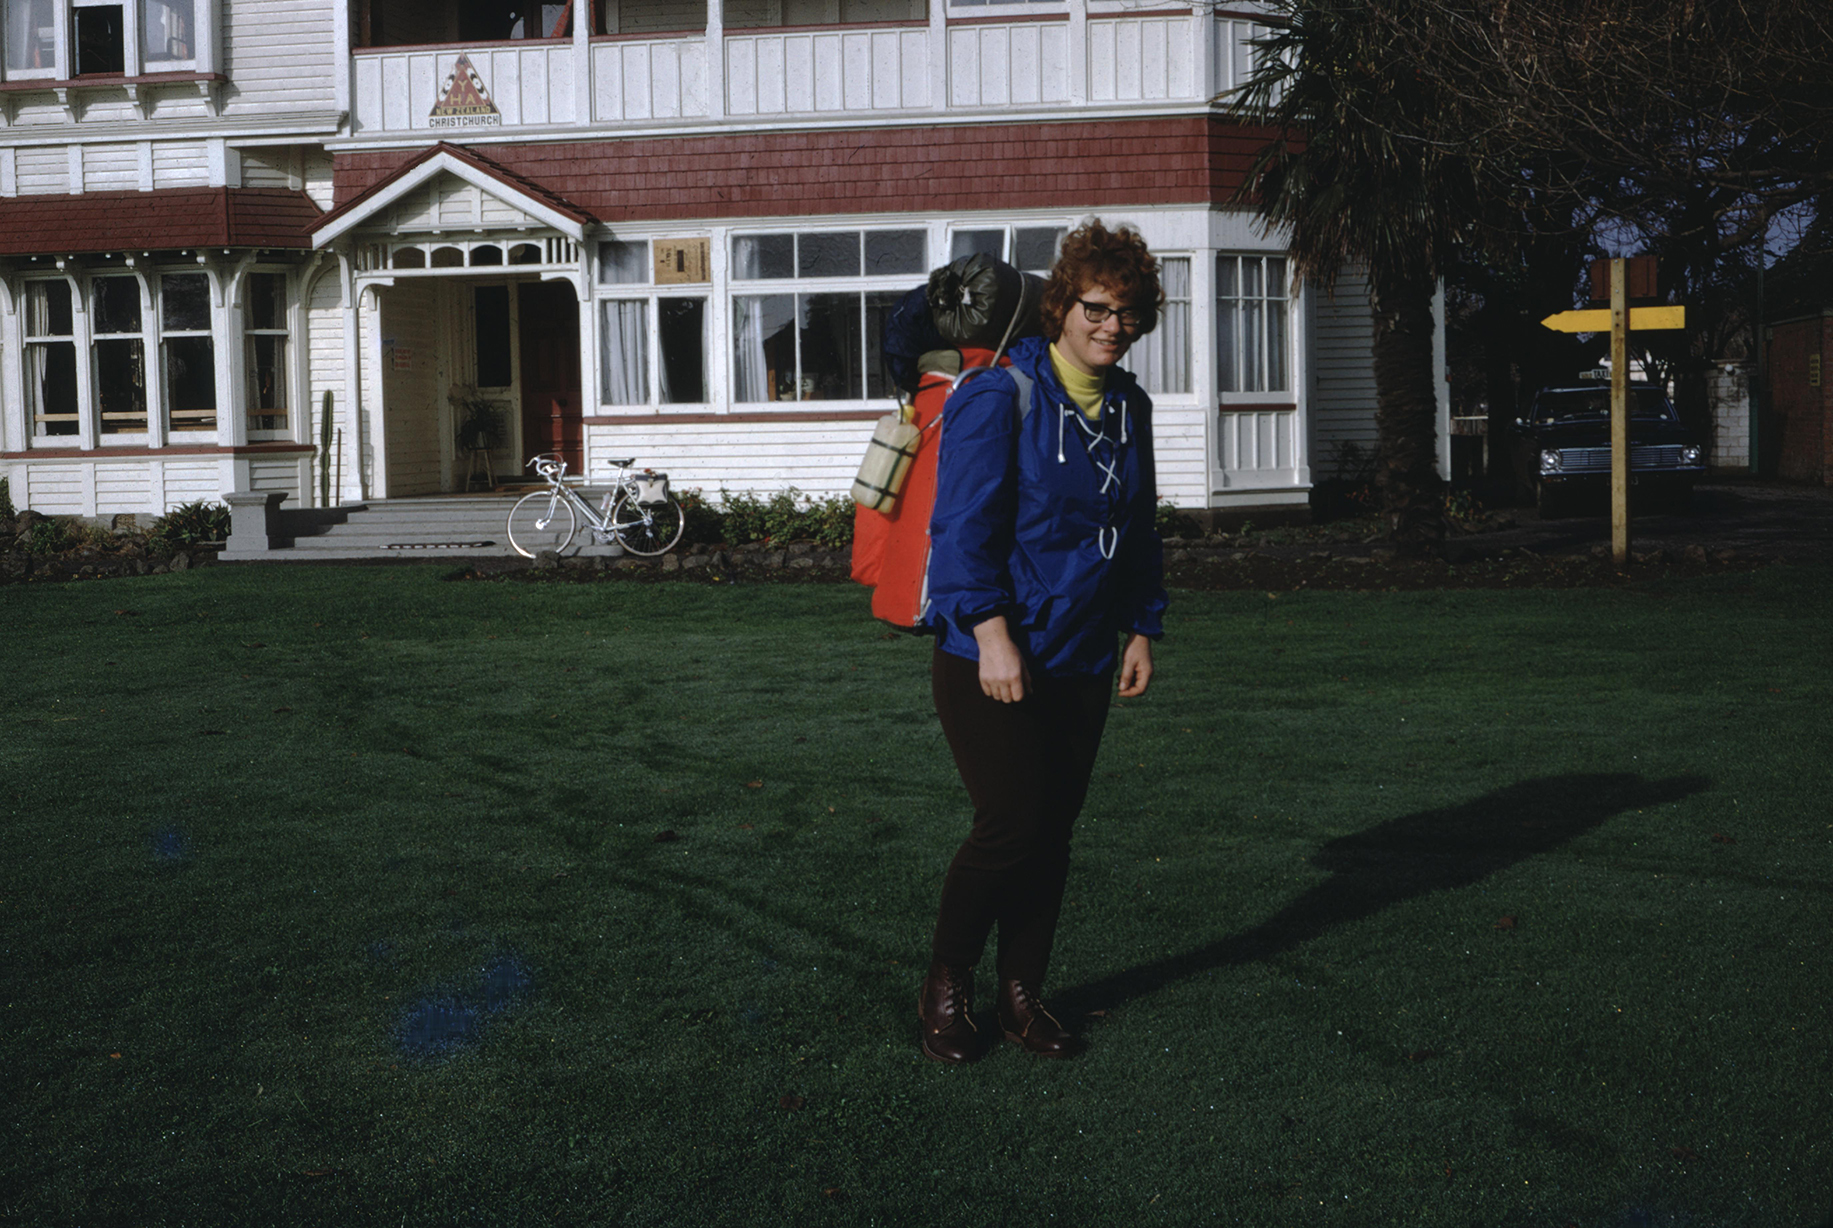 a female backpacker poses in front of a house